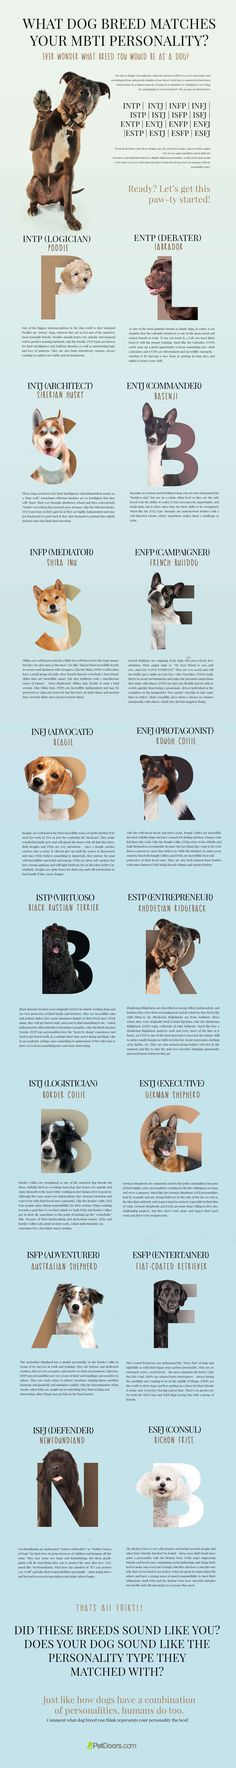 Every dog is unique just as every human is! But the fun lies in discovering the similarities that are there beyond the fur and the species, of course! So our pet-crazy team started a fun project that resulted in this Myers-Briggs Type Indicator for dogs! This infographic is just a fun way to see what characteristics certain breeds may have in common with our personality types! #infographics #pets